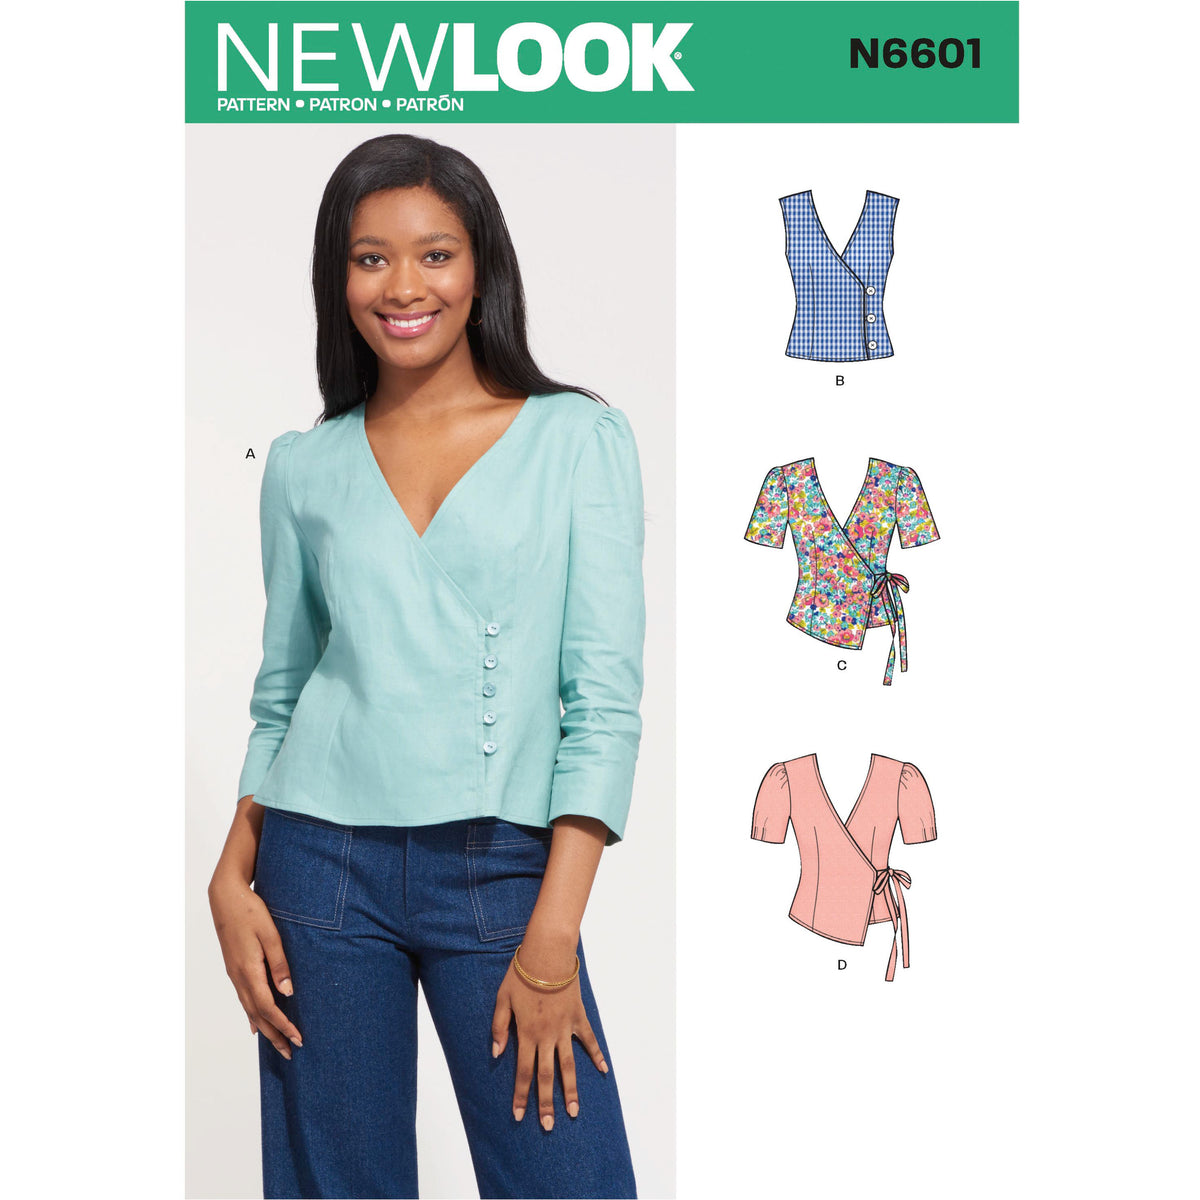 6601 New Look Sewing Pattern N6601 Misses' Tops